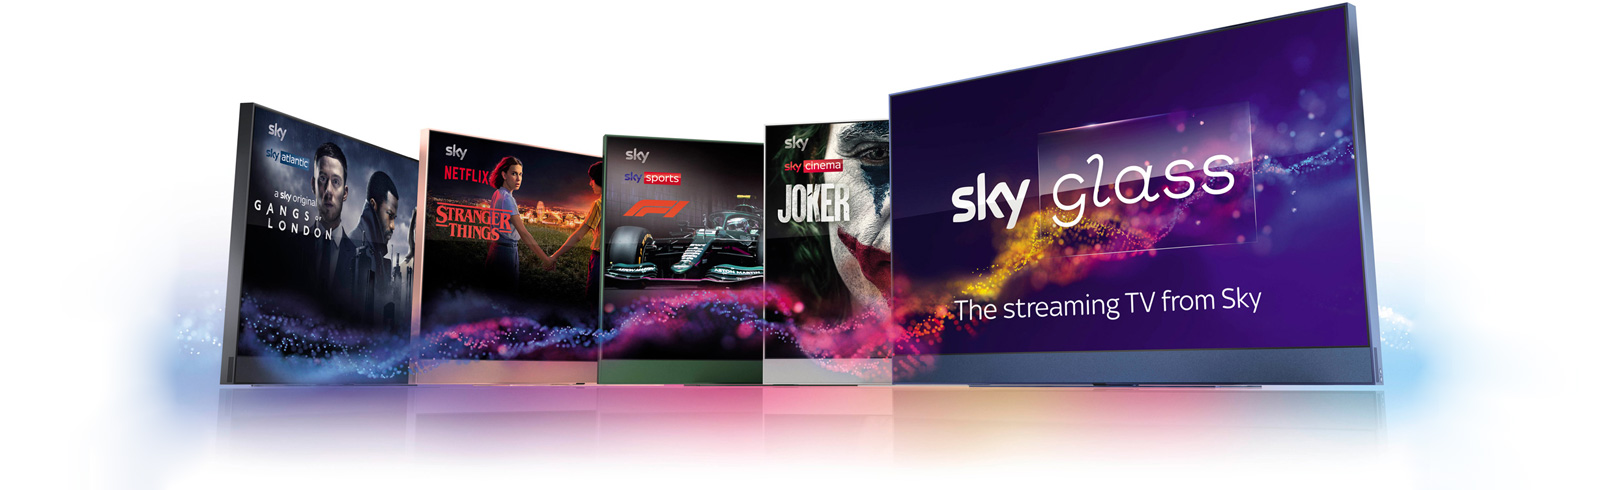 Sky Glass streaming TV will launch in the UK on October 18